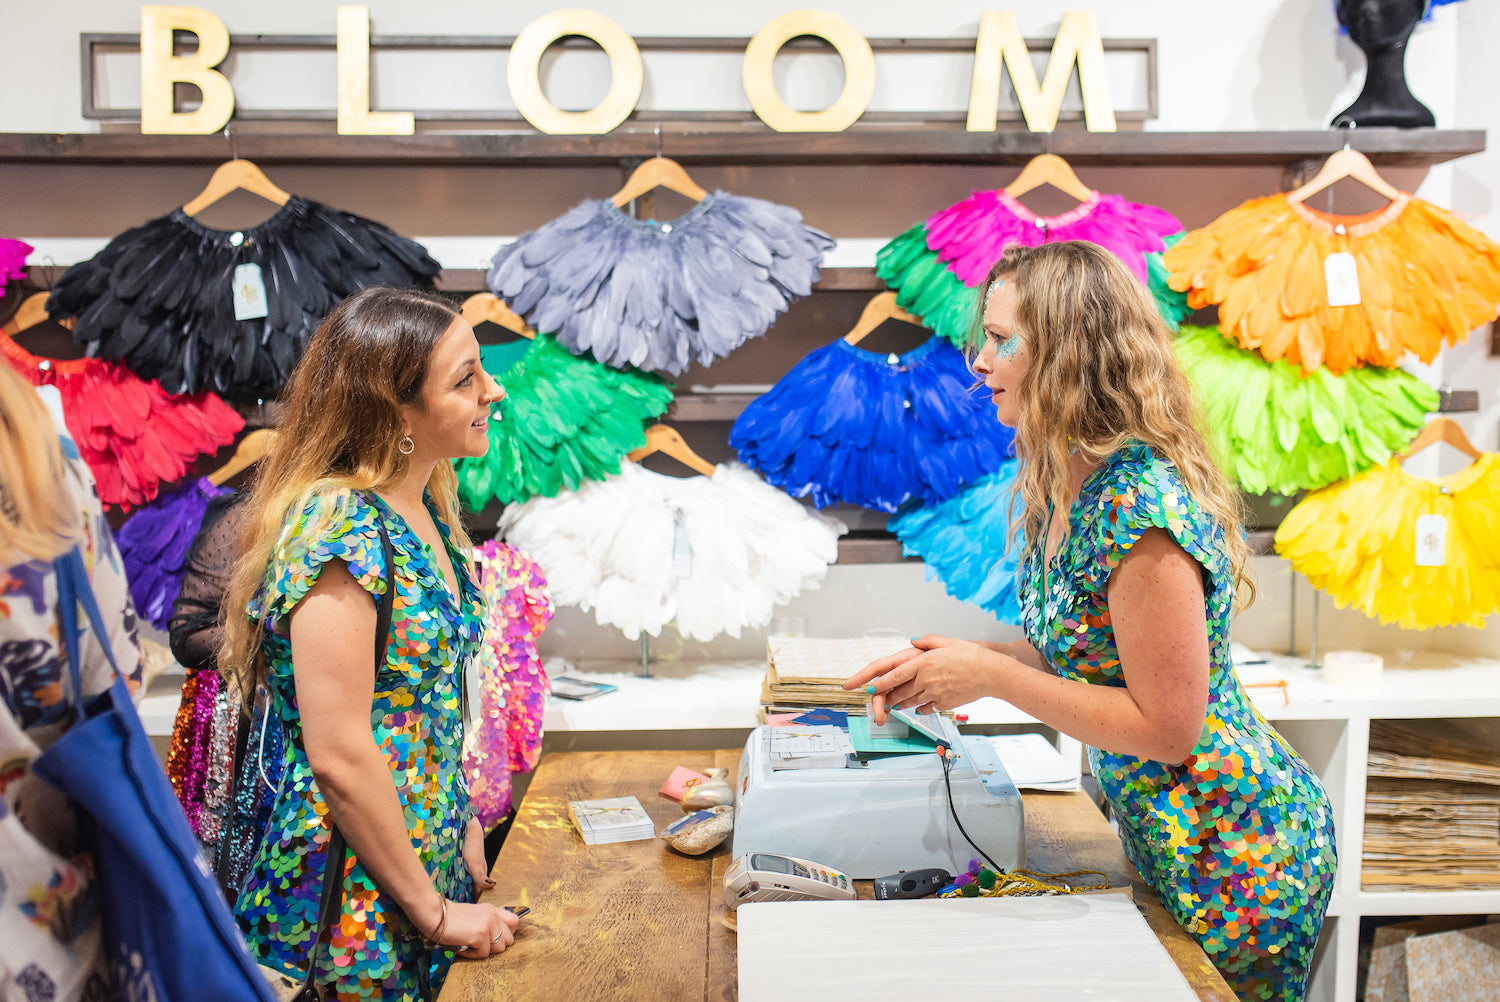 Two women wearing green sequin jumpsuits by slow fashion brand Rosa Bloom talk over the counter at the Rosa Bloom Pop Up Shop.